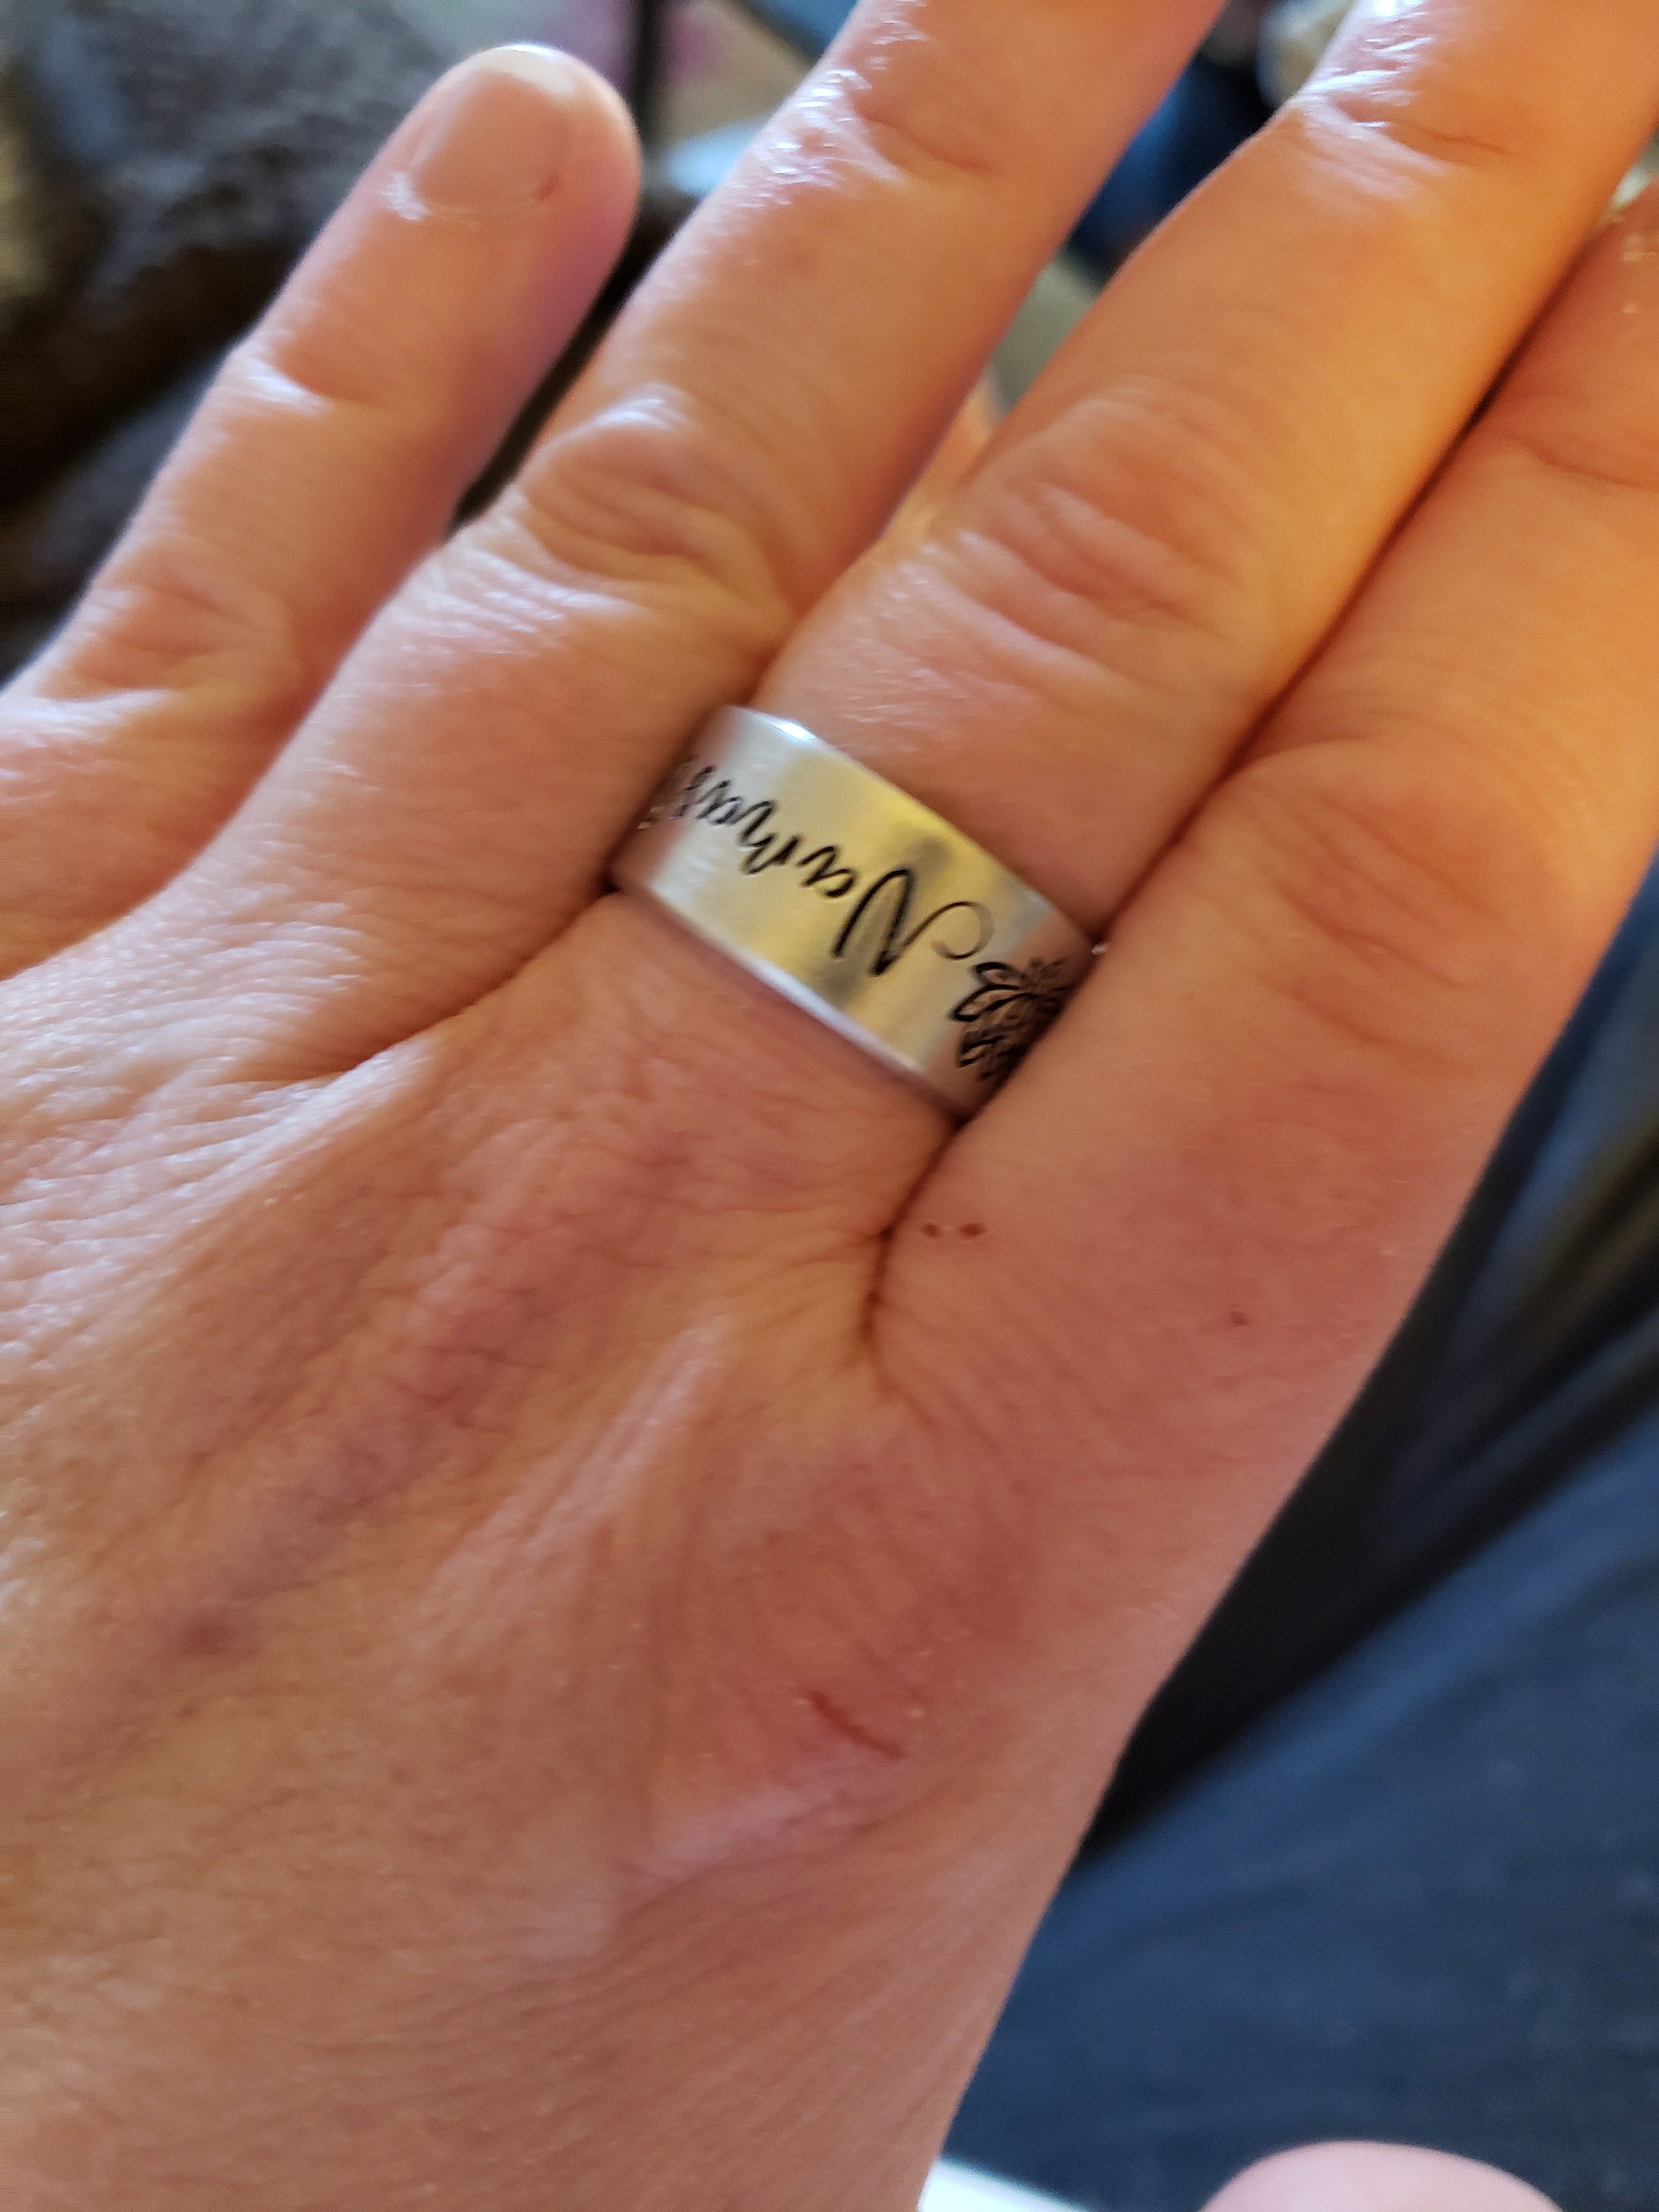 Dana Turner added a photo of their purchase